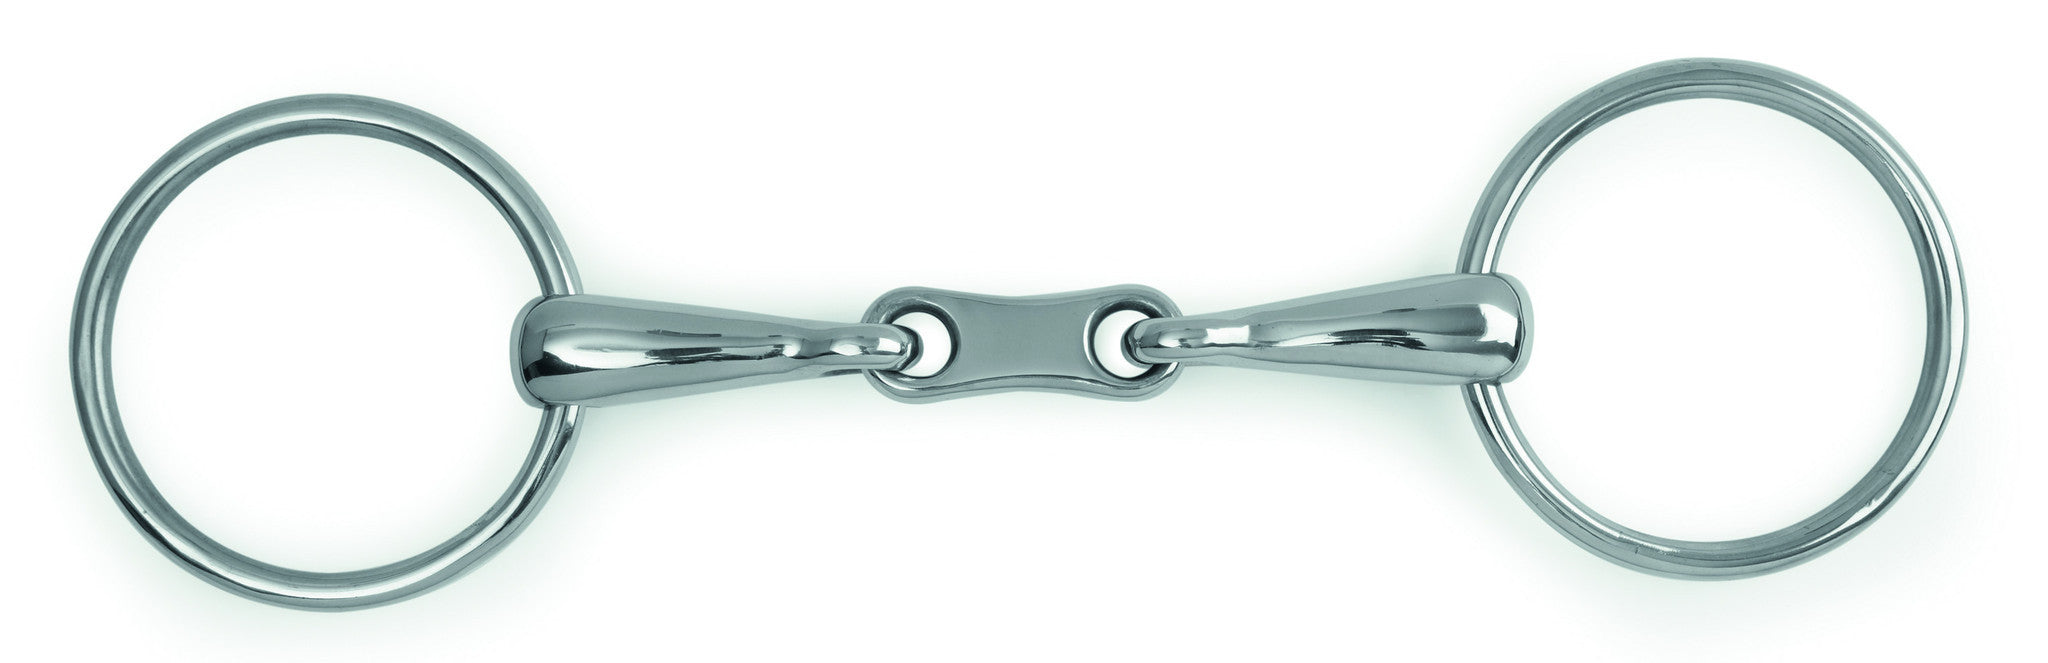 French Link Loose Ring Snaffle Bit